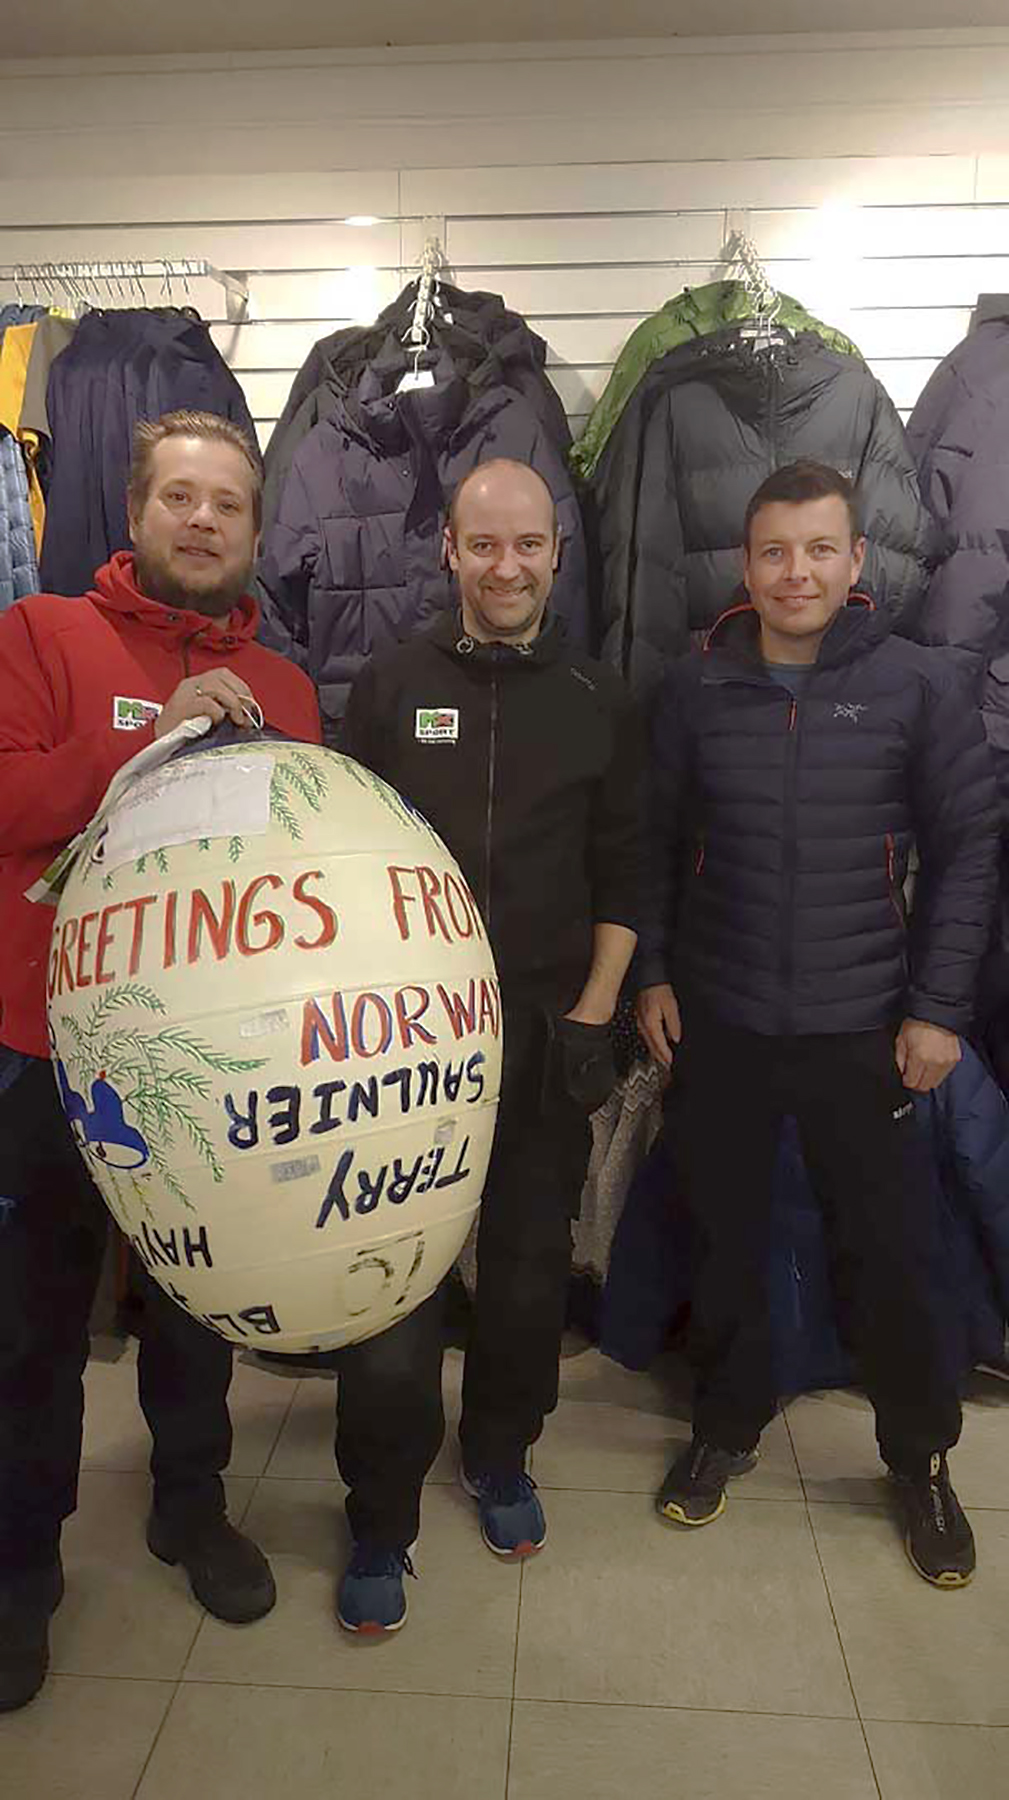 From left are Lars Framvik, who found the fishing buoy's Nova Scotian owner, Terry Saulnier, on Facebook; Preben Olsen, who found the buoy on the shore of Norway; and Warrant Officer Martin Fiset of 415 Long Range Patrol Force Development Squadron. Warrant Officer Fiset picked up the buoy from Mr. Framvik and Mr. Olsen in Andenes, Norway, so it could be brought home to Mr. Saulnier after its long journey. PHOTO: Submitted